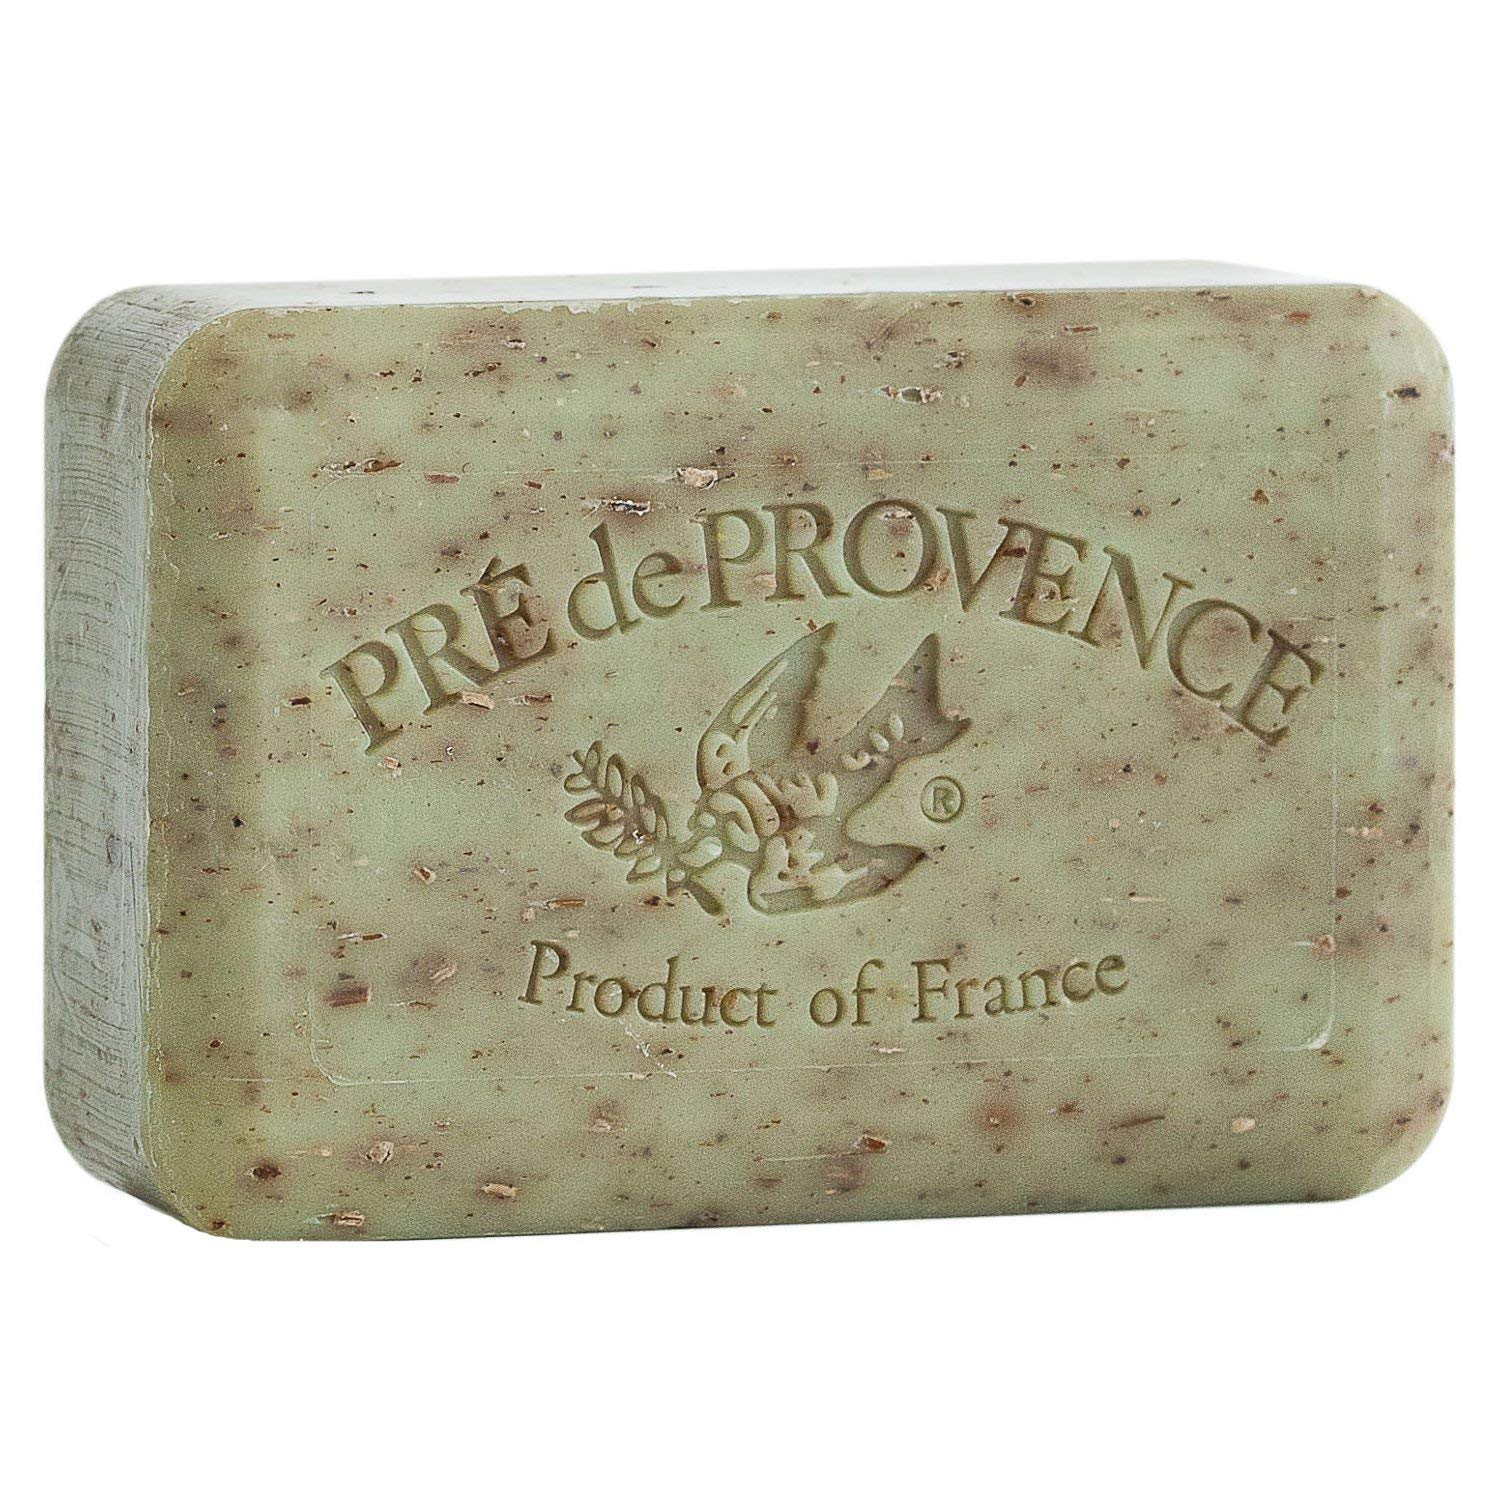 Pre de Provence Artisanal French Soap Bar Enriched with Shea Butter, Sage, 250 Gram